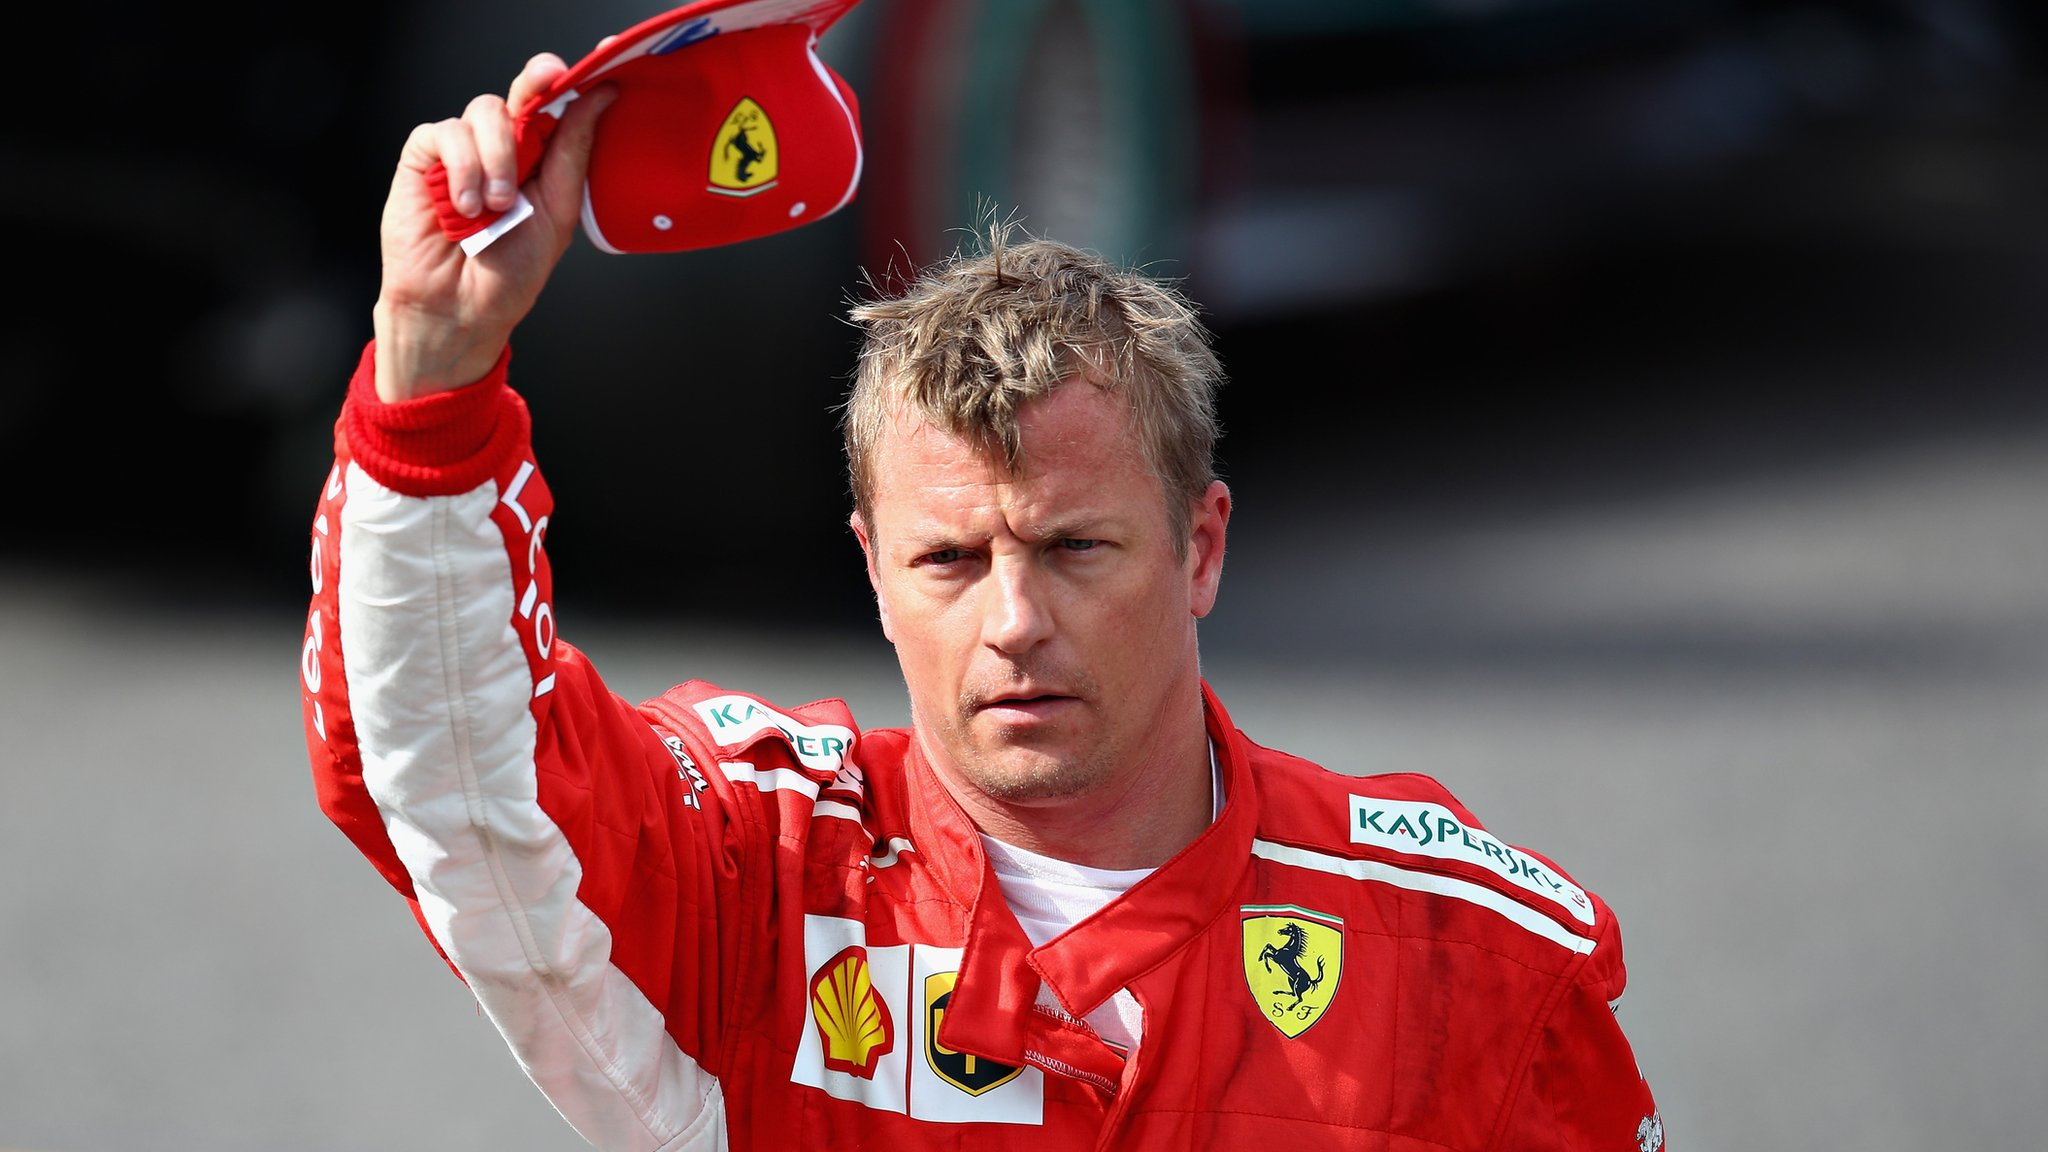 Is Raikkonen right to stay in F1? Palmer's latest column